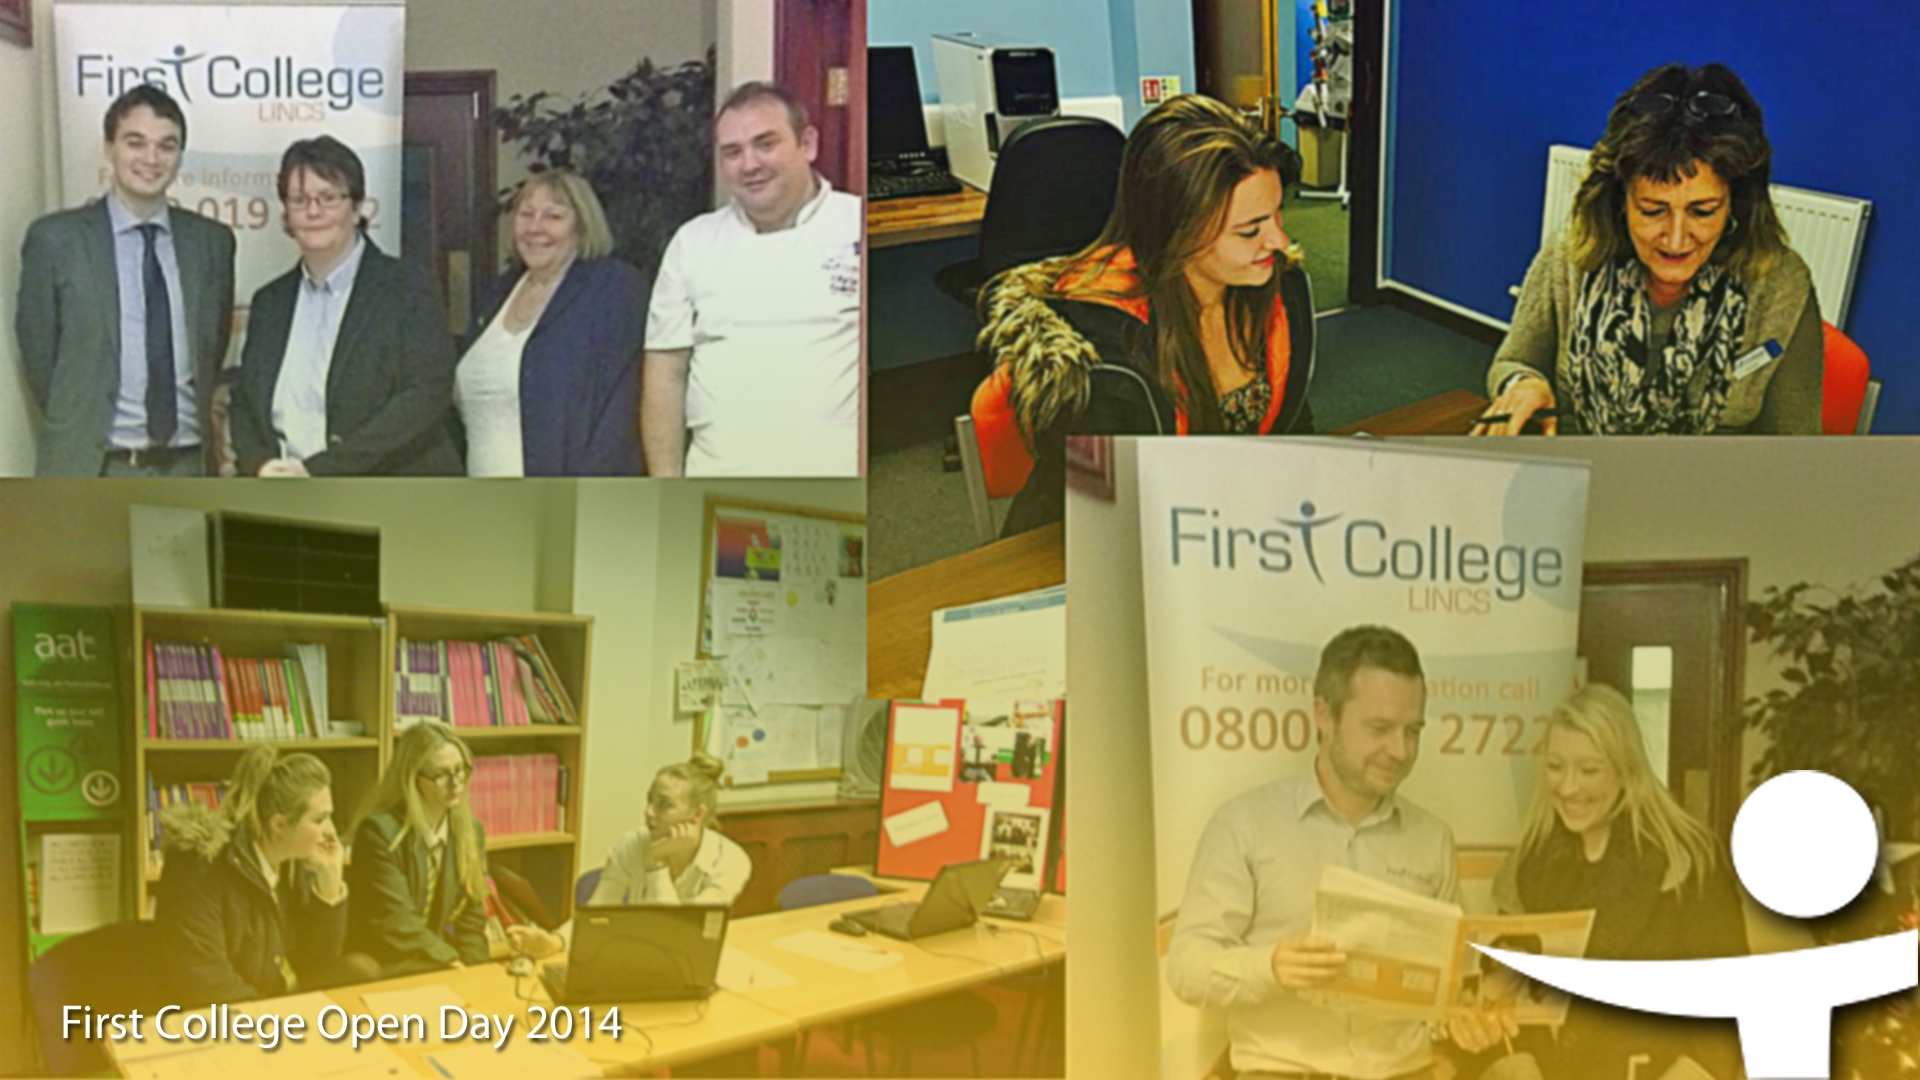 First College Open Day 2014